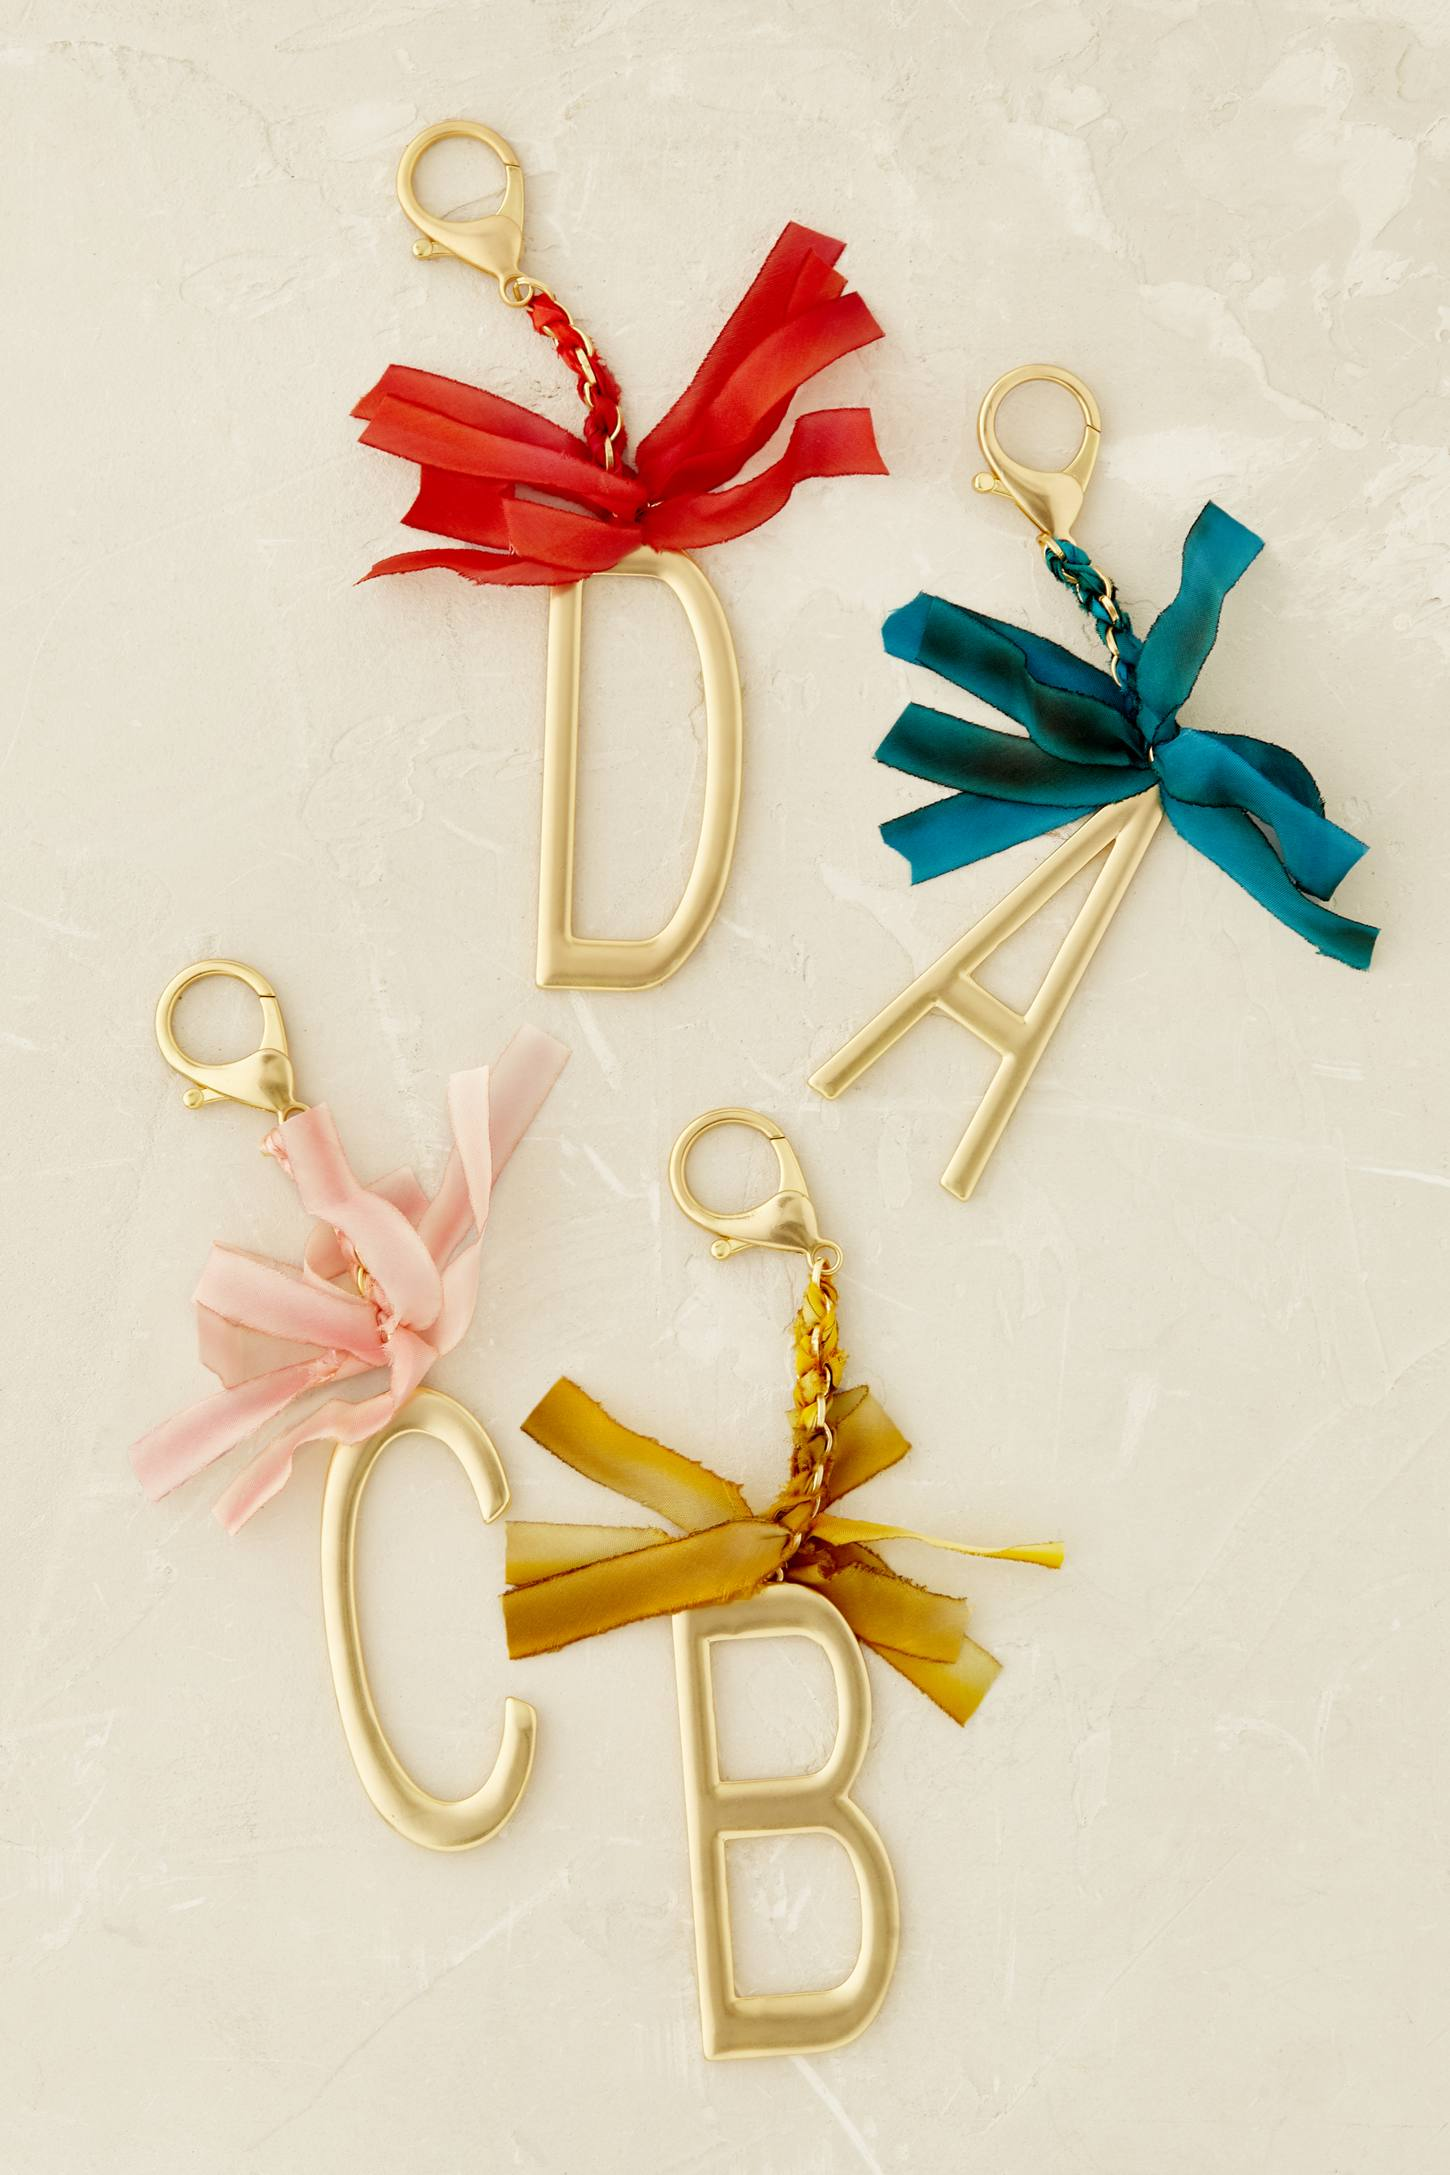 Slide View: 2: Ribboned Monogram Keychain